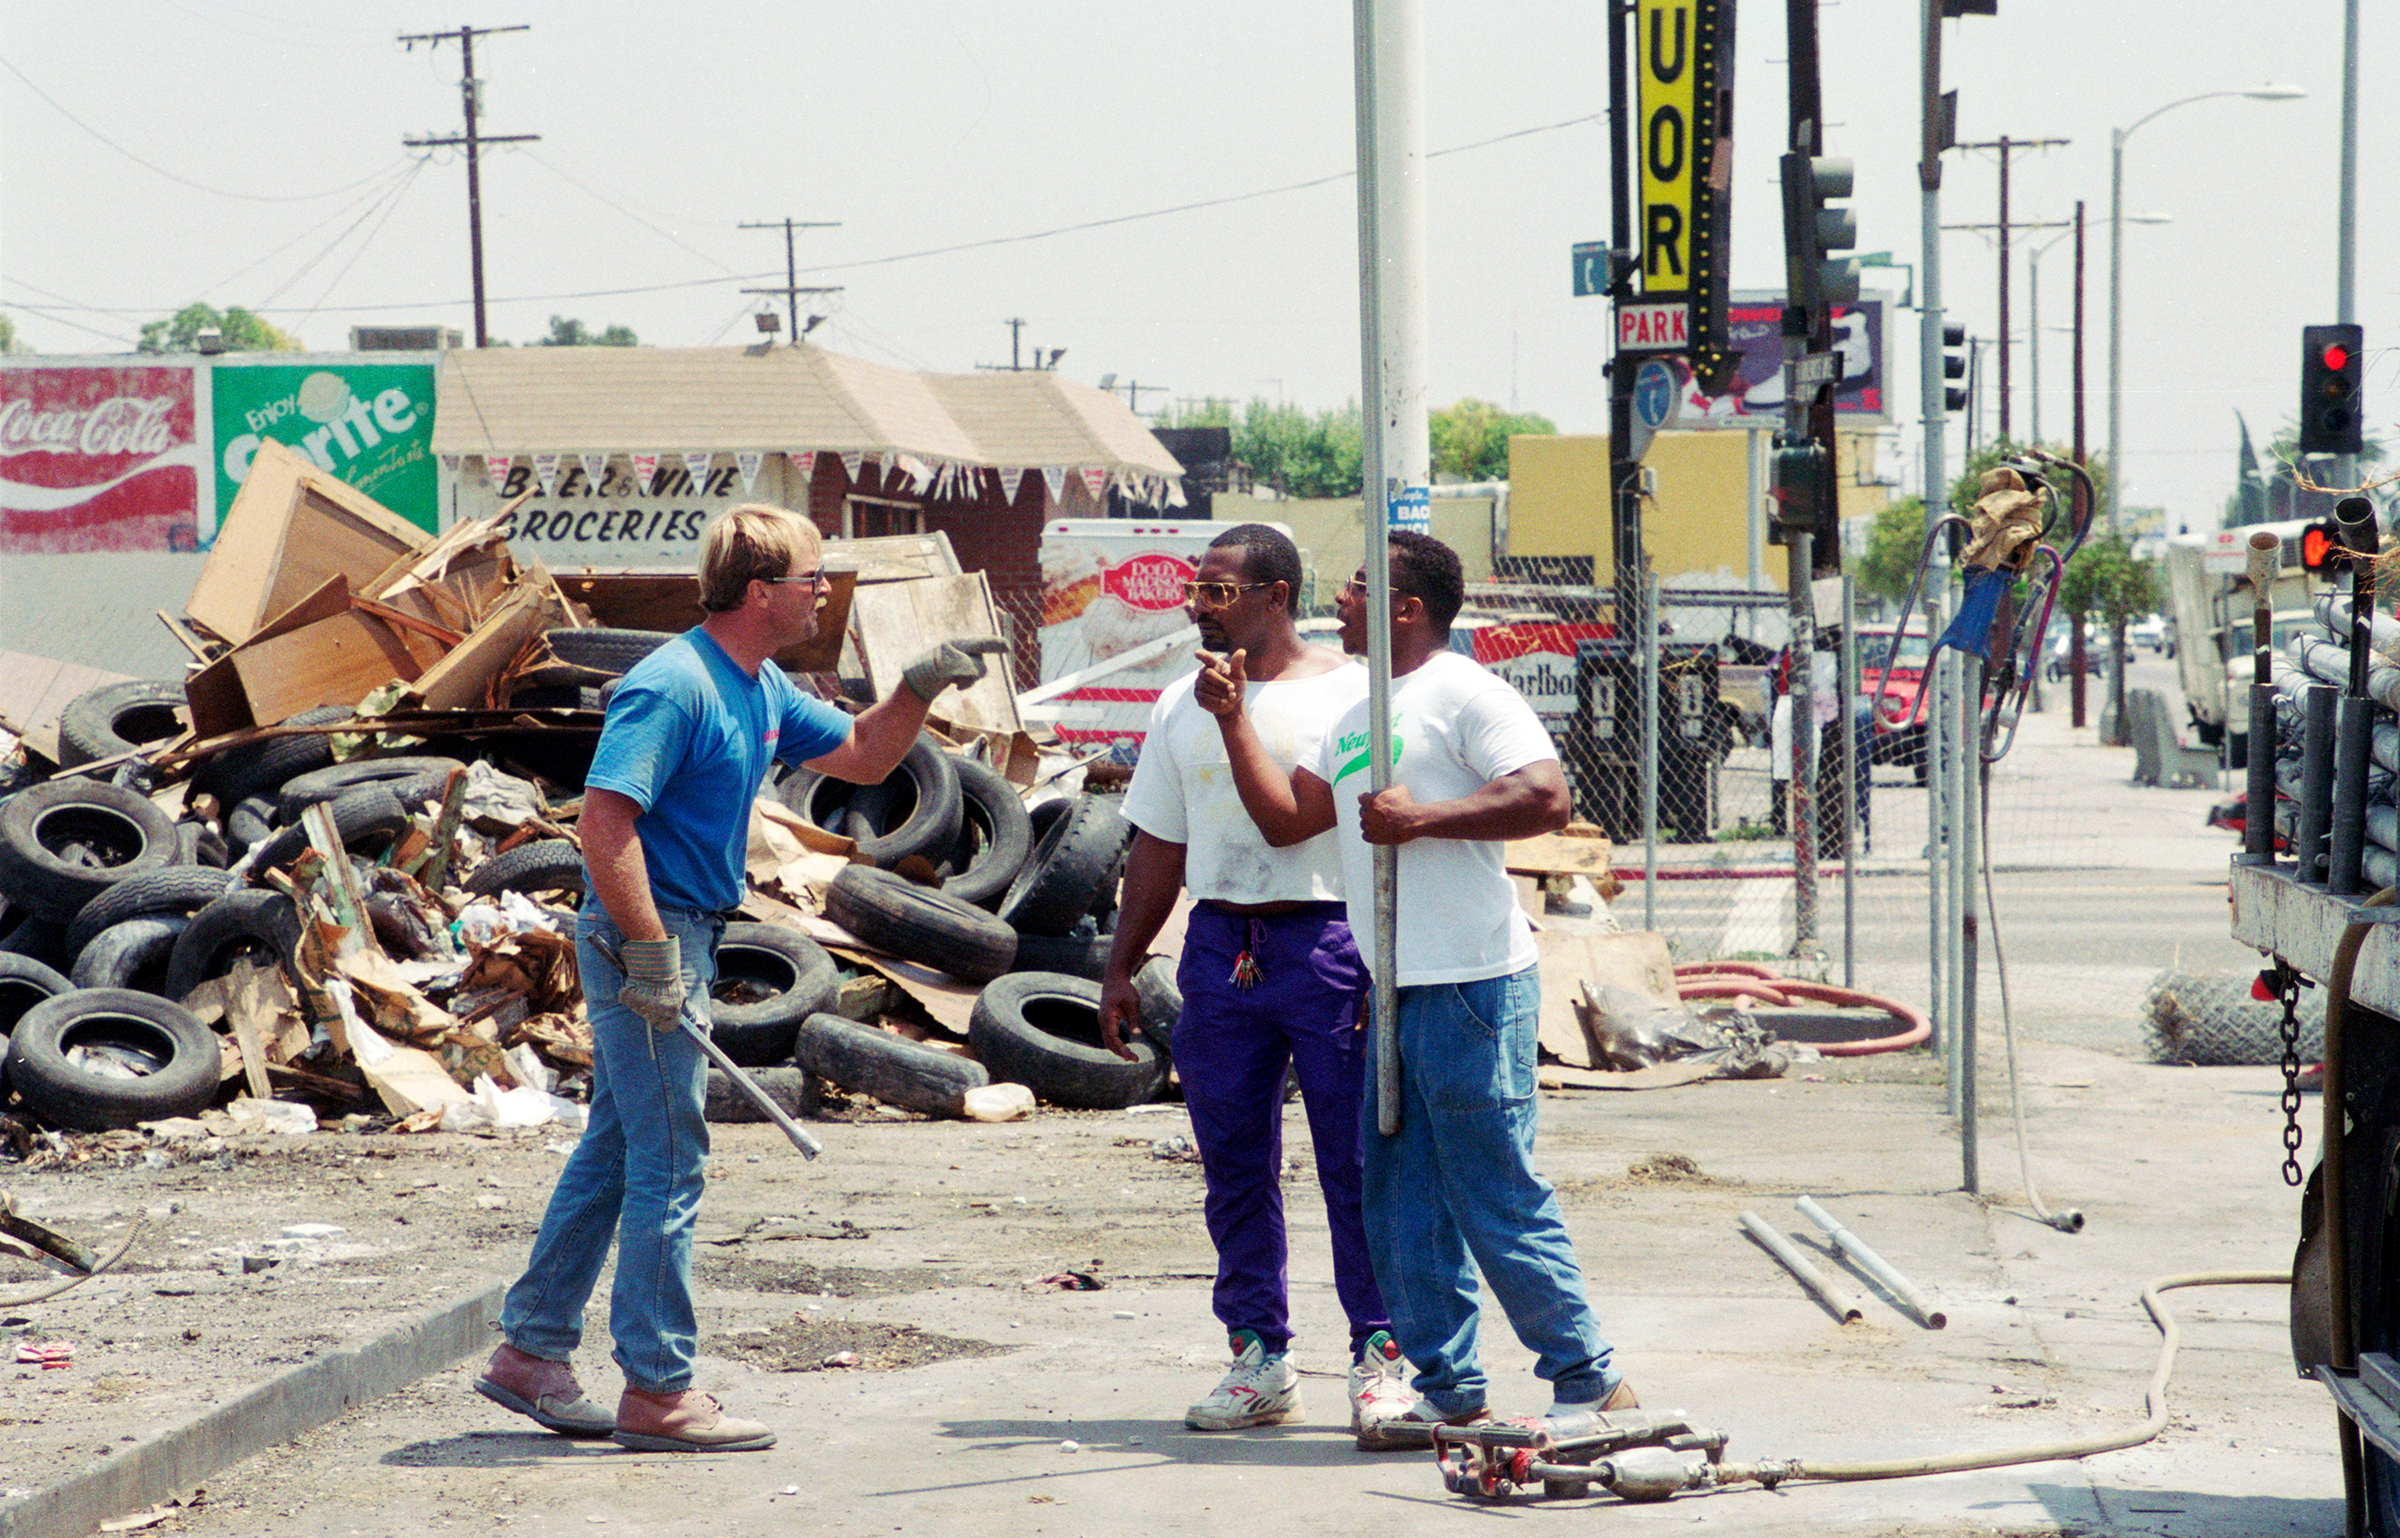 Armed with metal pipes, a construction worker (in blue) and demonstrators threaten one another during a protest on the northwest corner of the intersection of Florence and Normandie on Aug. 4, 1992. The demonstration was about the lack of Black employees on the job site.